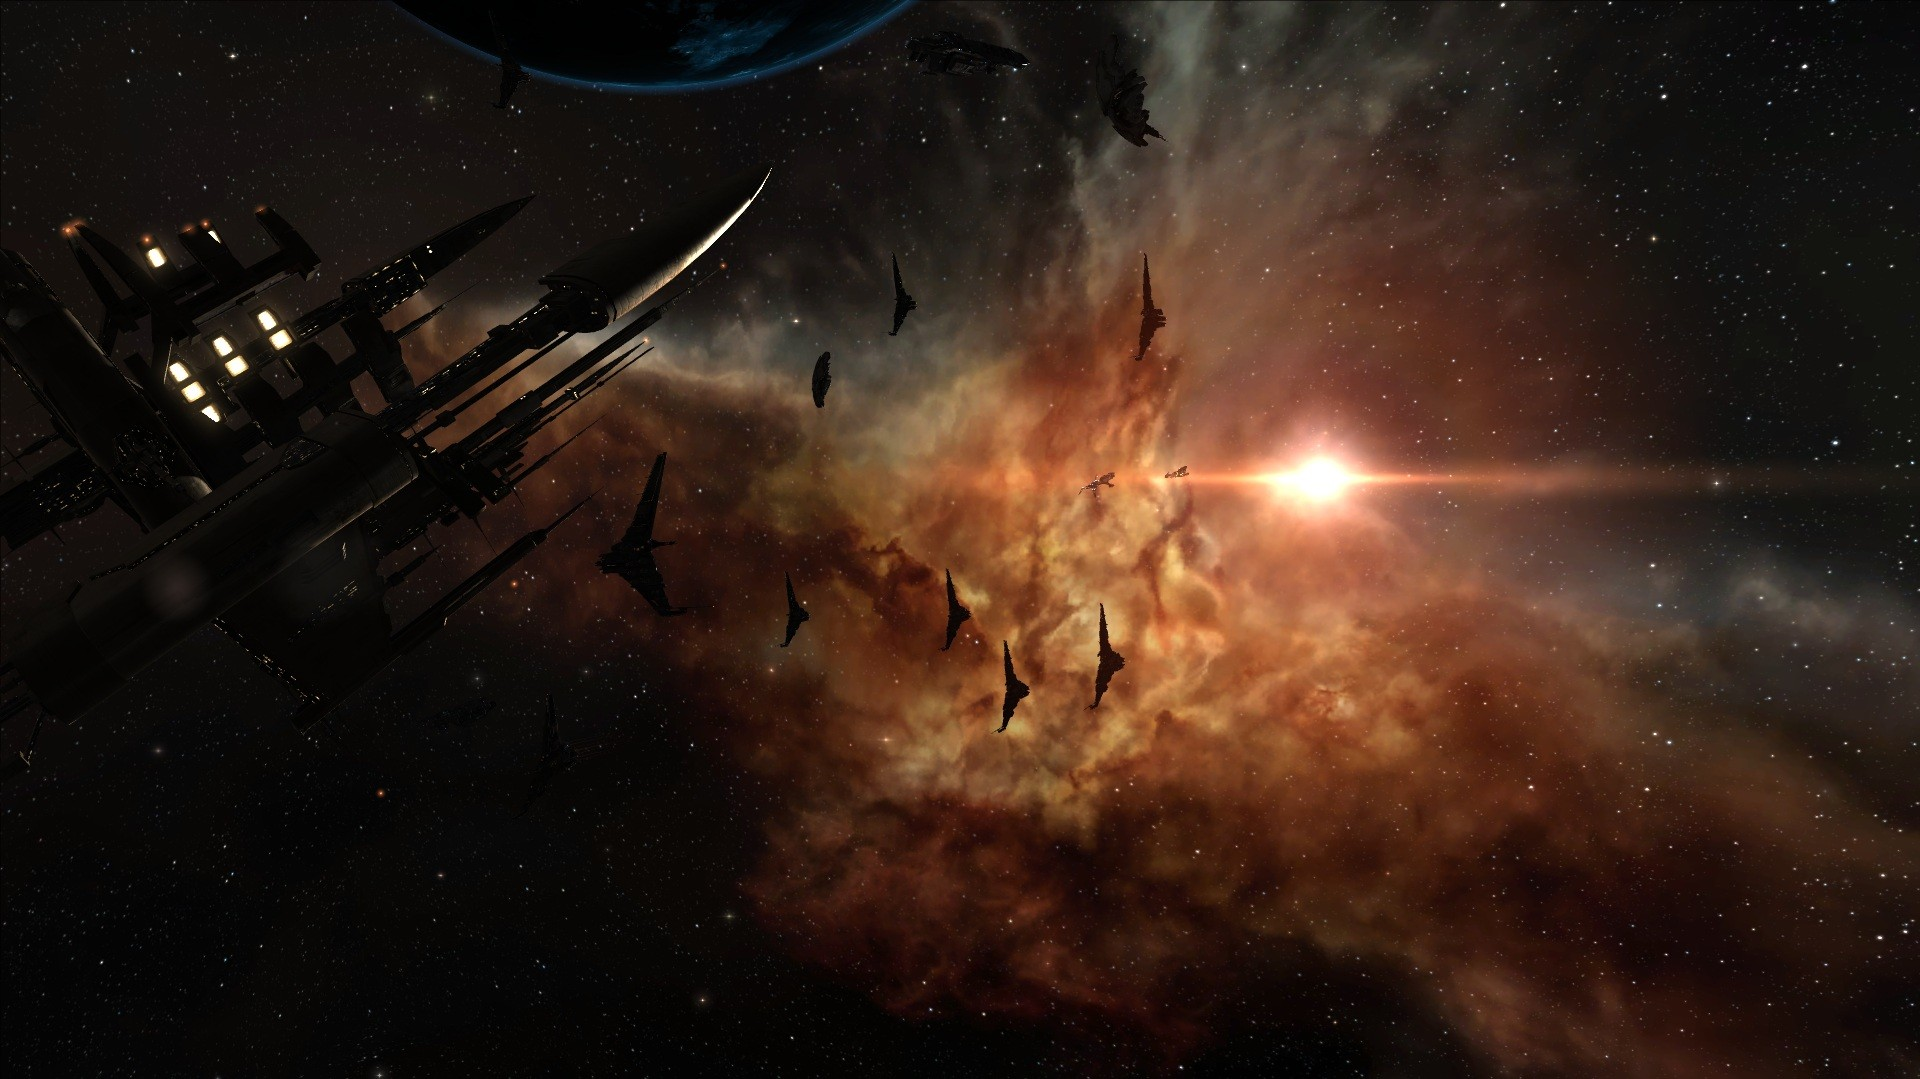 EVE Online - Morning in space